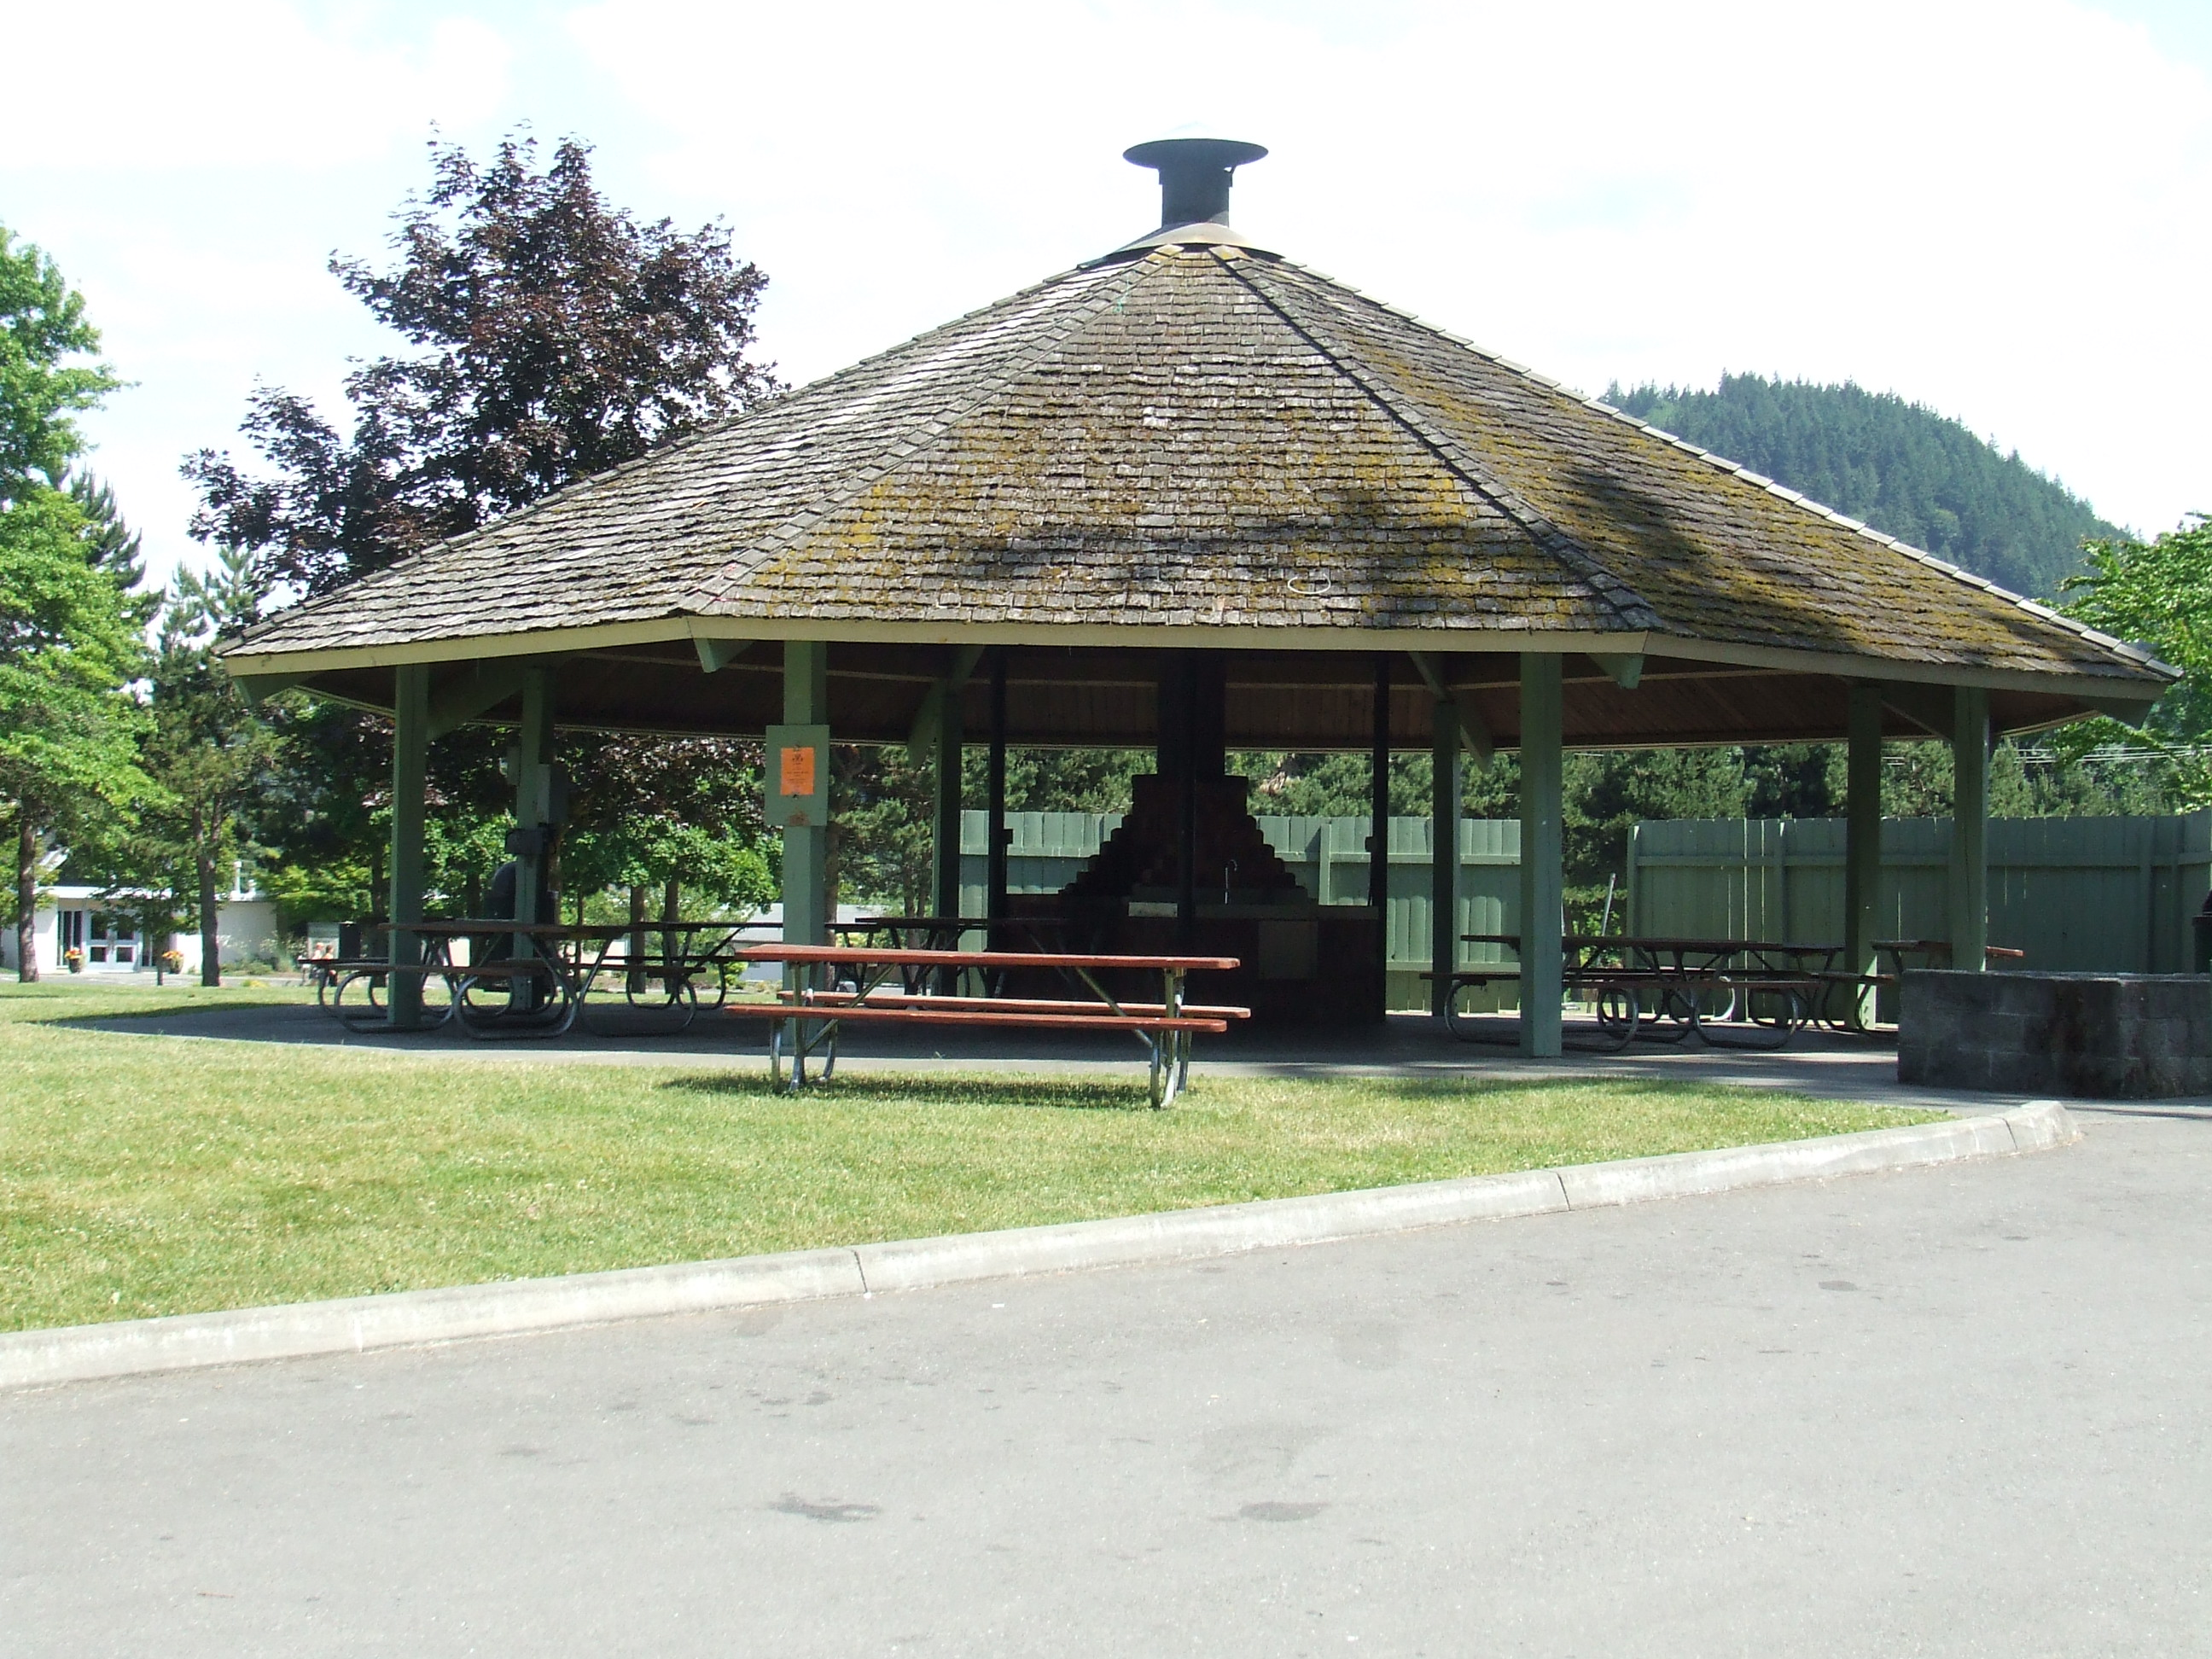 Gazebo at Hillcrest Park